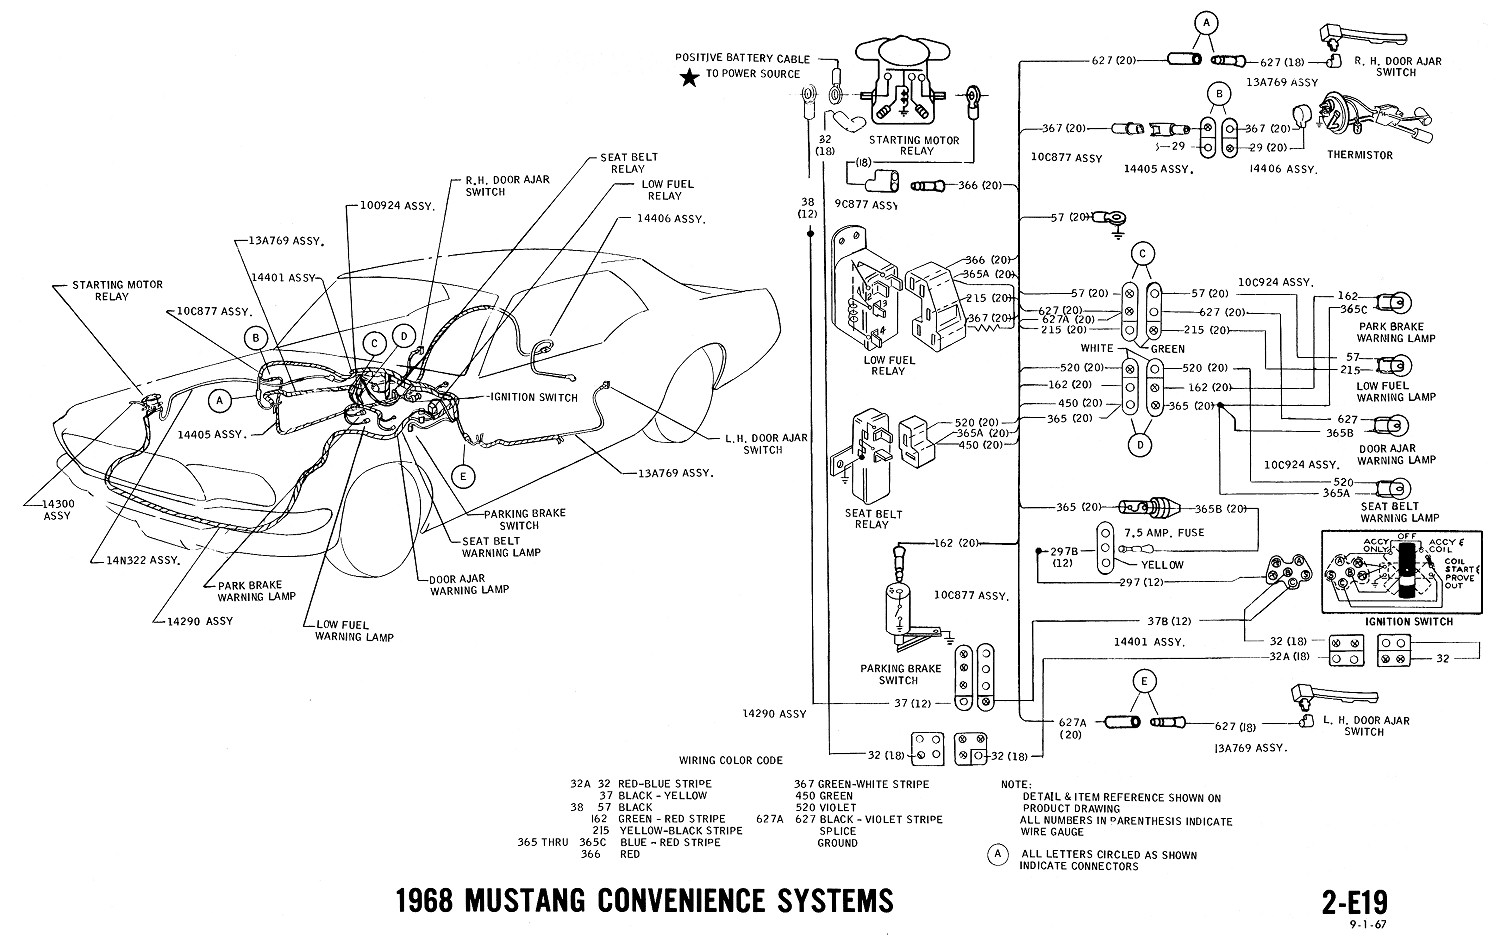 E19 1968 mustang wiring diagrams evolving software Multi Speed Blower Motor Wiring at edmiracle.co